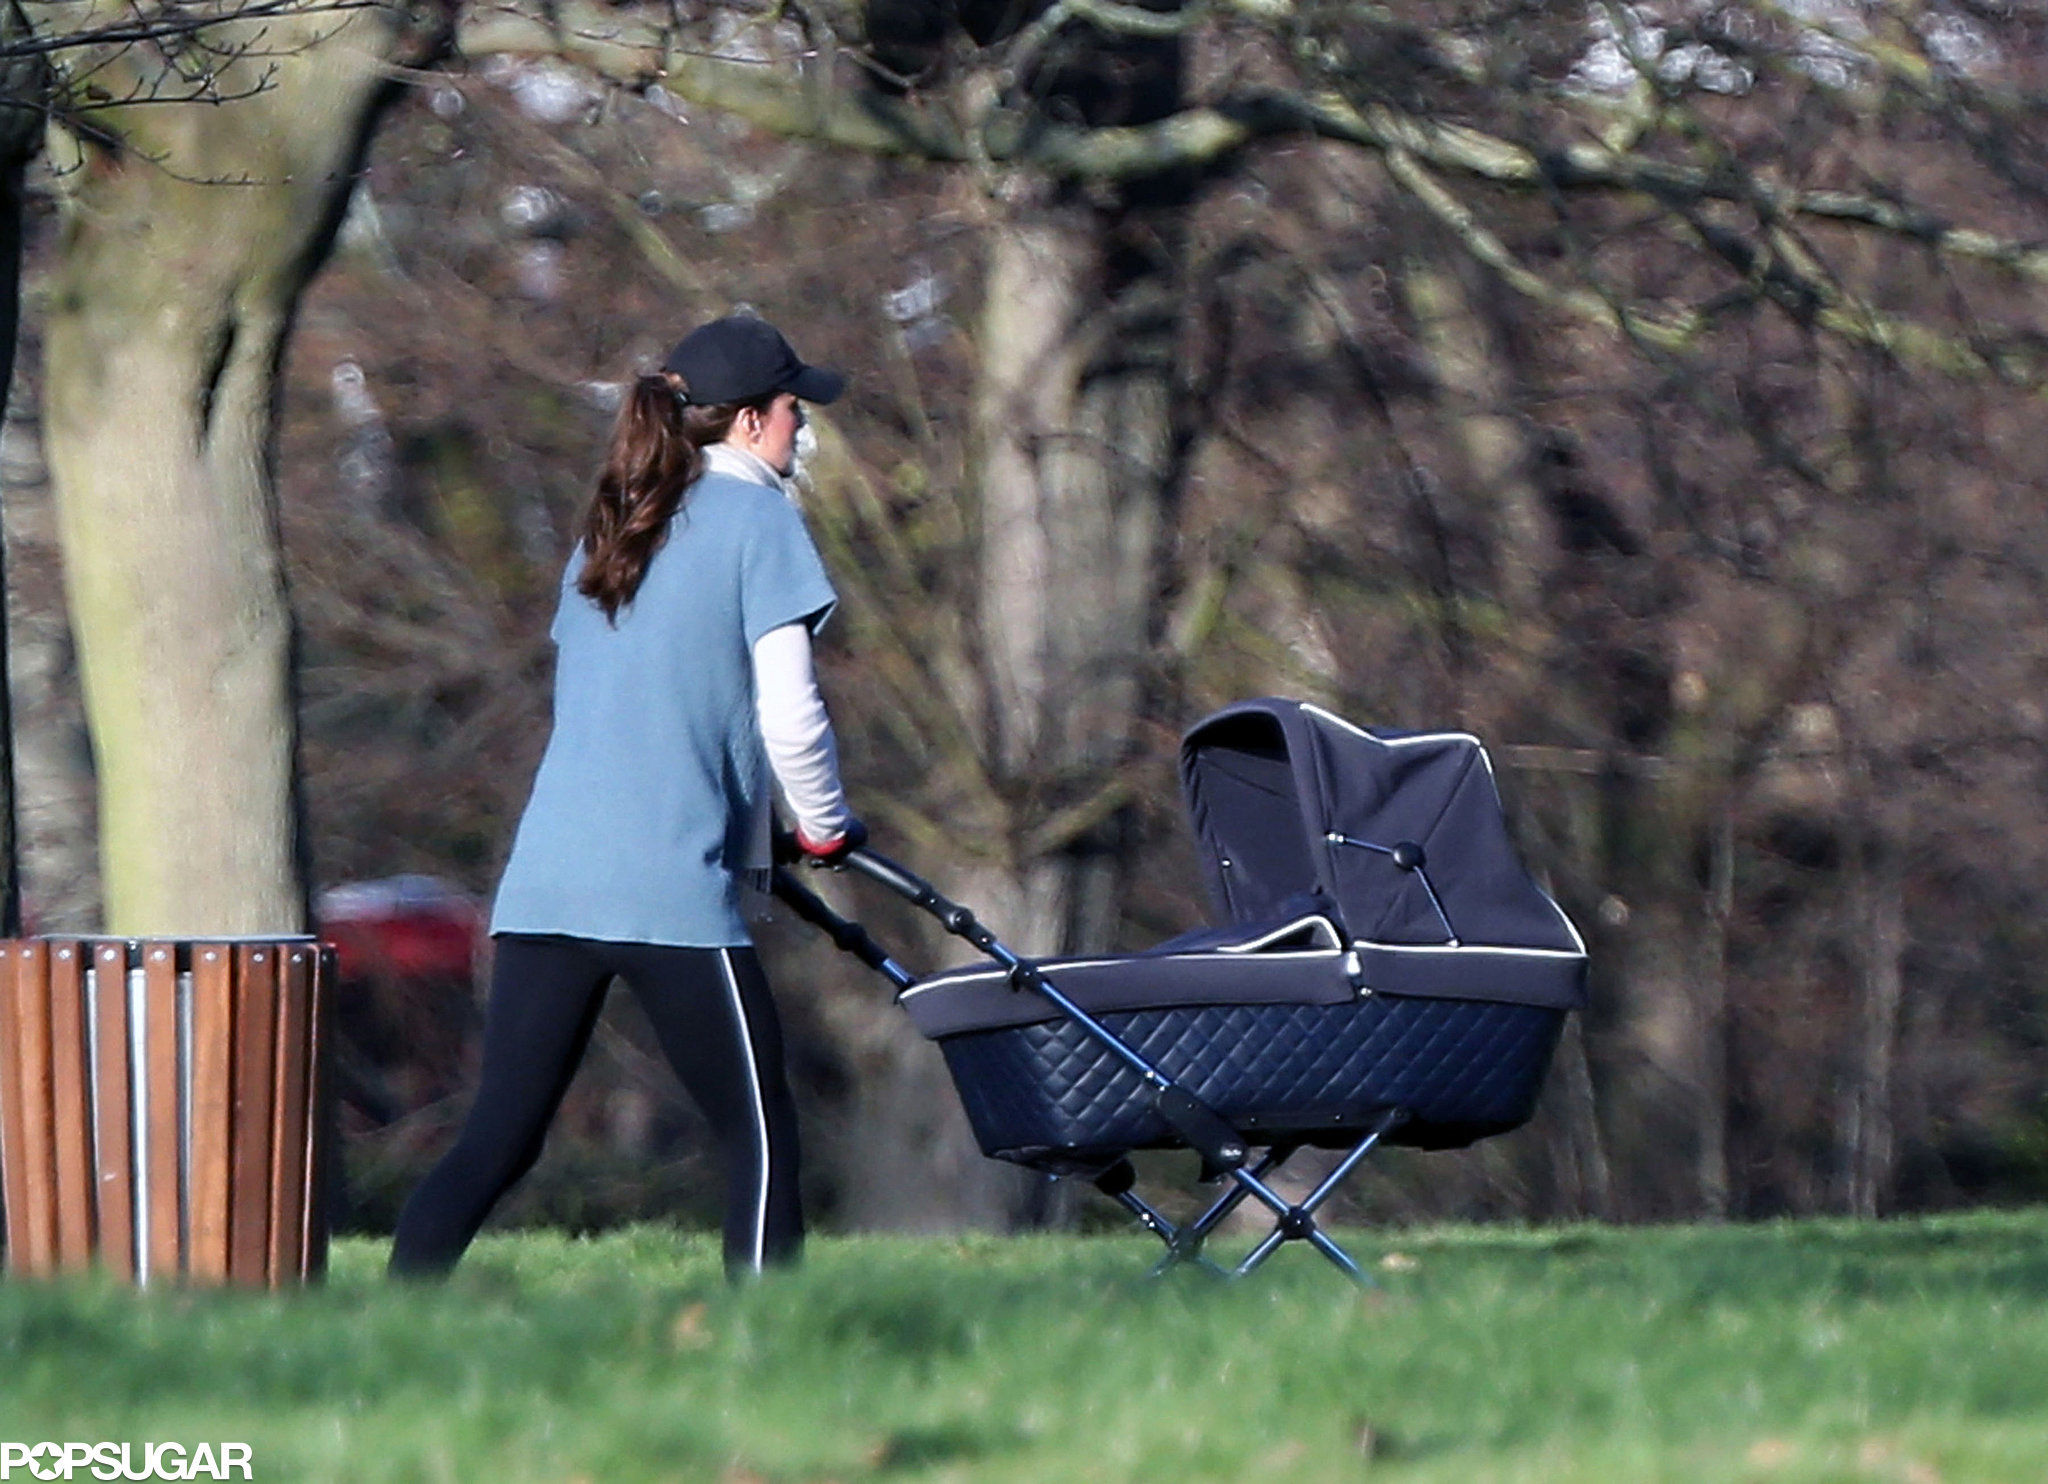 Baby Stroller Online Shopping Australia Celebrity Gossip Entertainment News Celebrity News